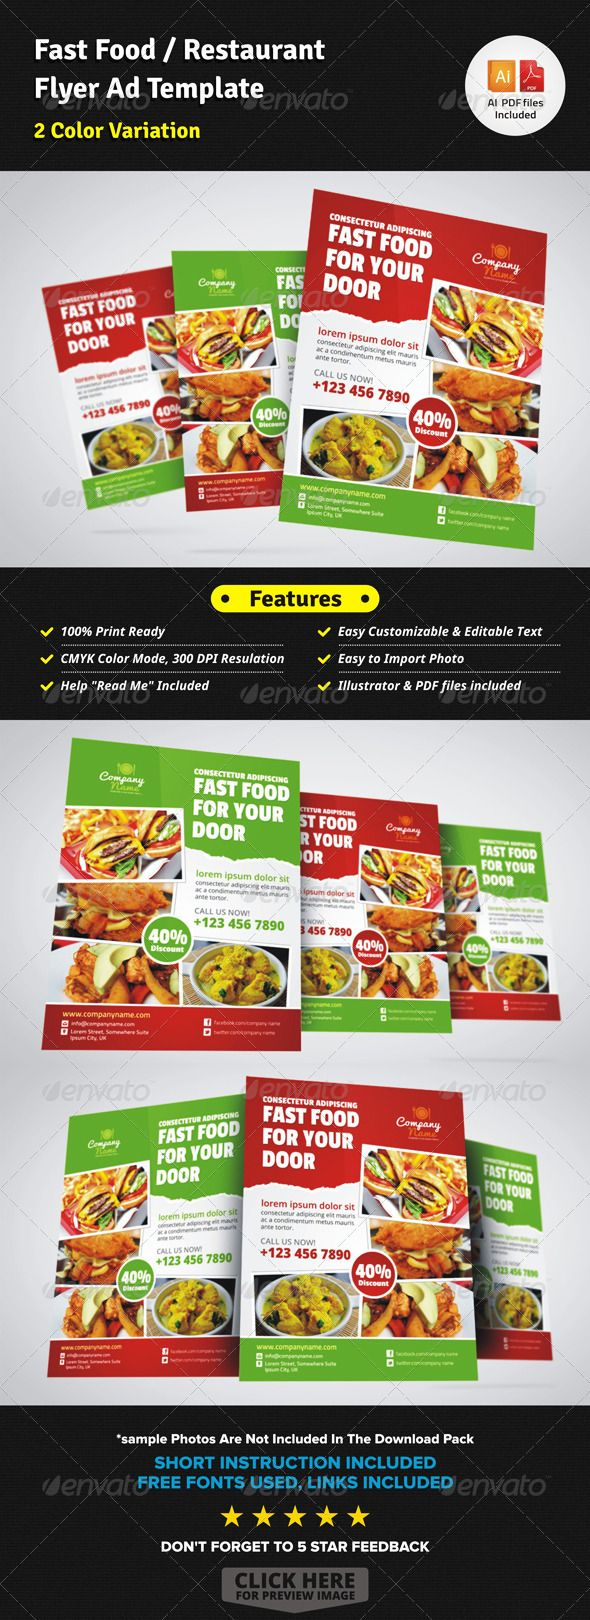 fast food restaurant flyer ad template restaurant magazine buy fast food restaurant flyer ad template by jbn comilla on graphicriver fast food restaurant flyer ad template creative clean and modern creative